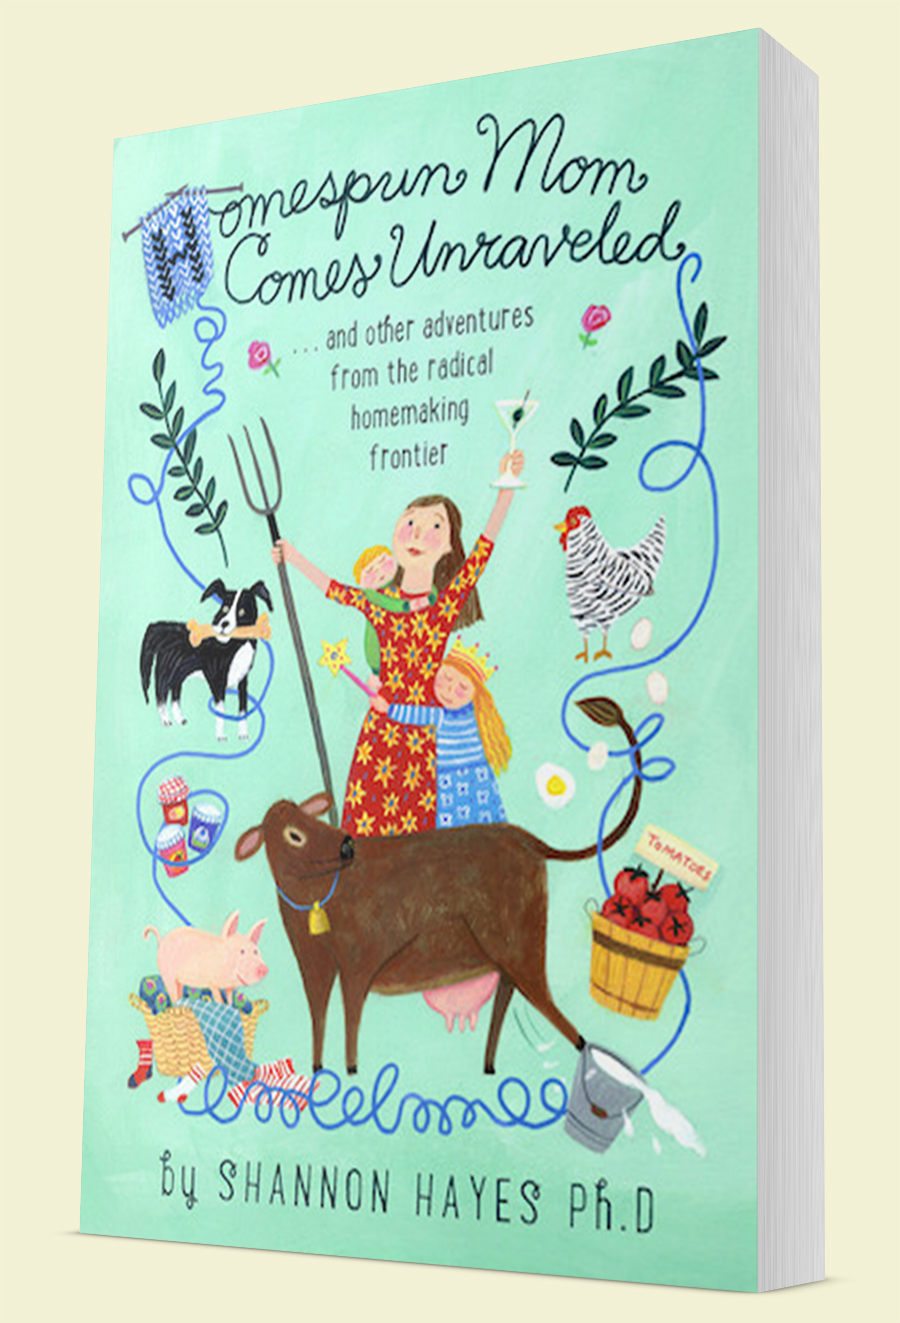 Homespun Mom Comes Unraveled by Shannon Hayes